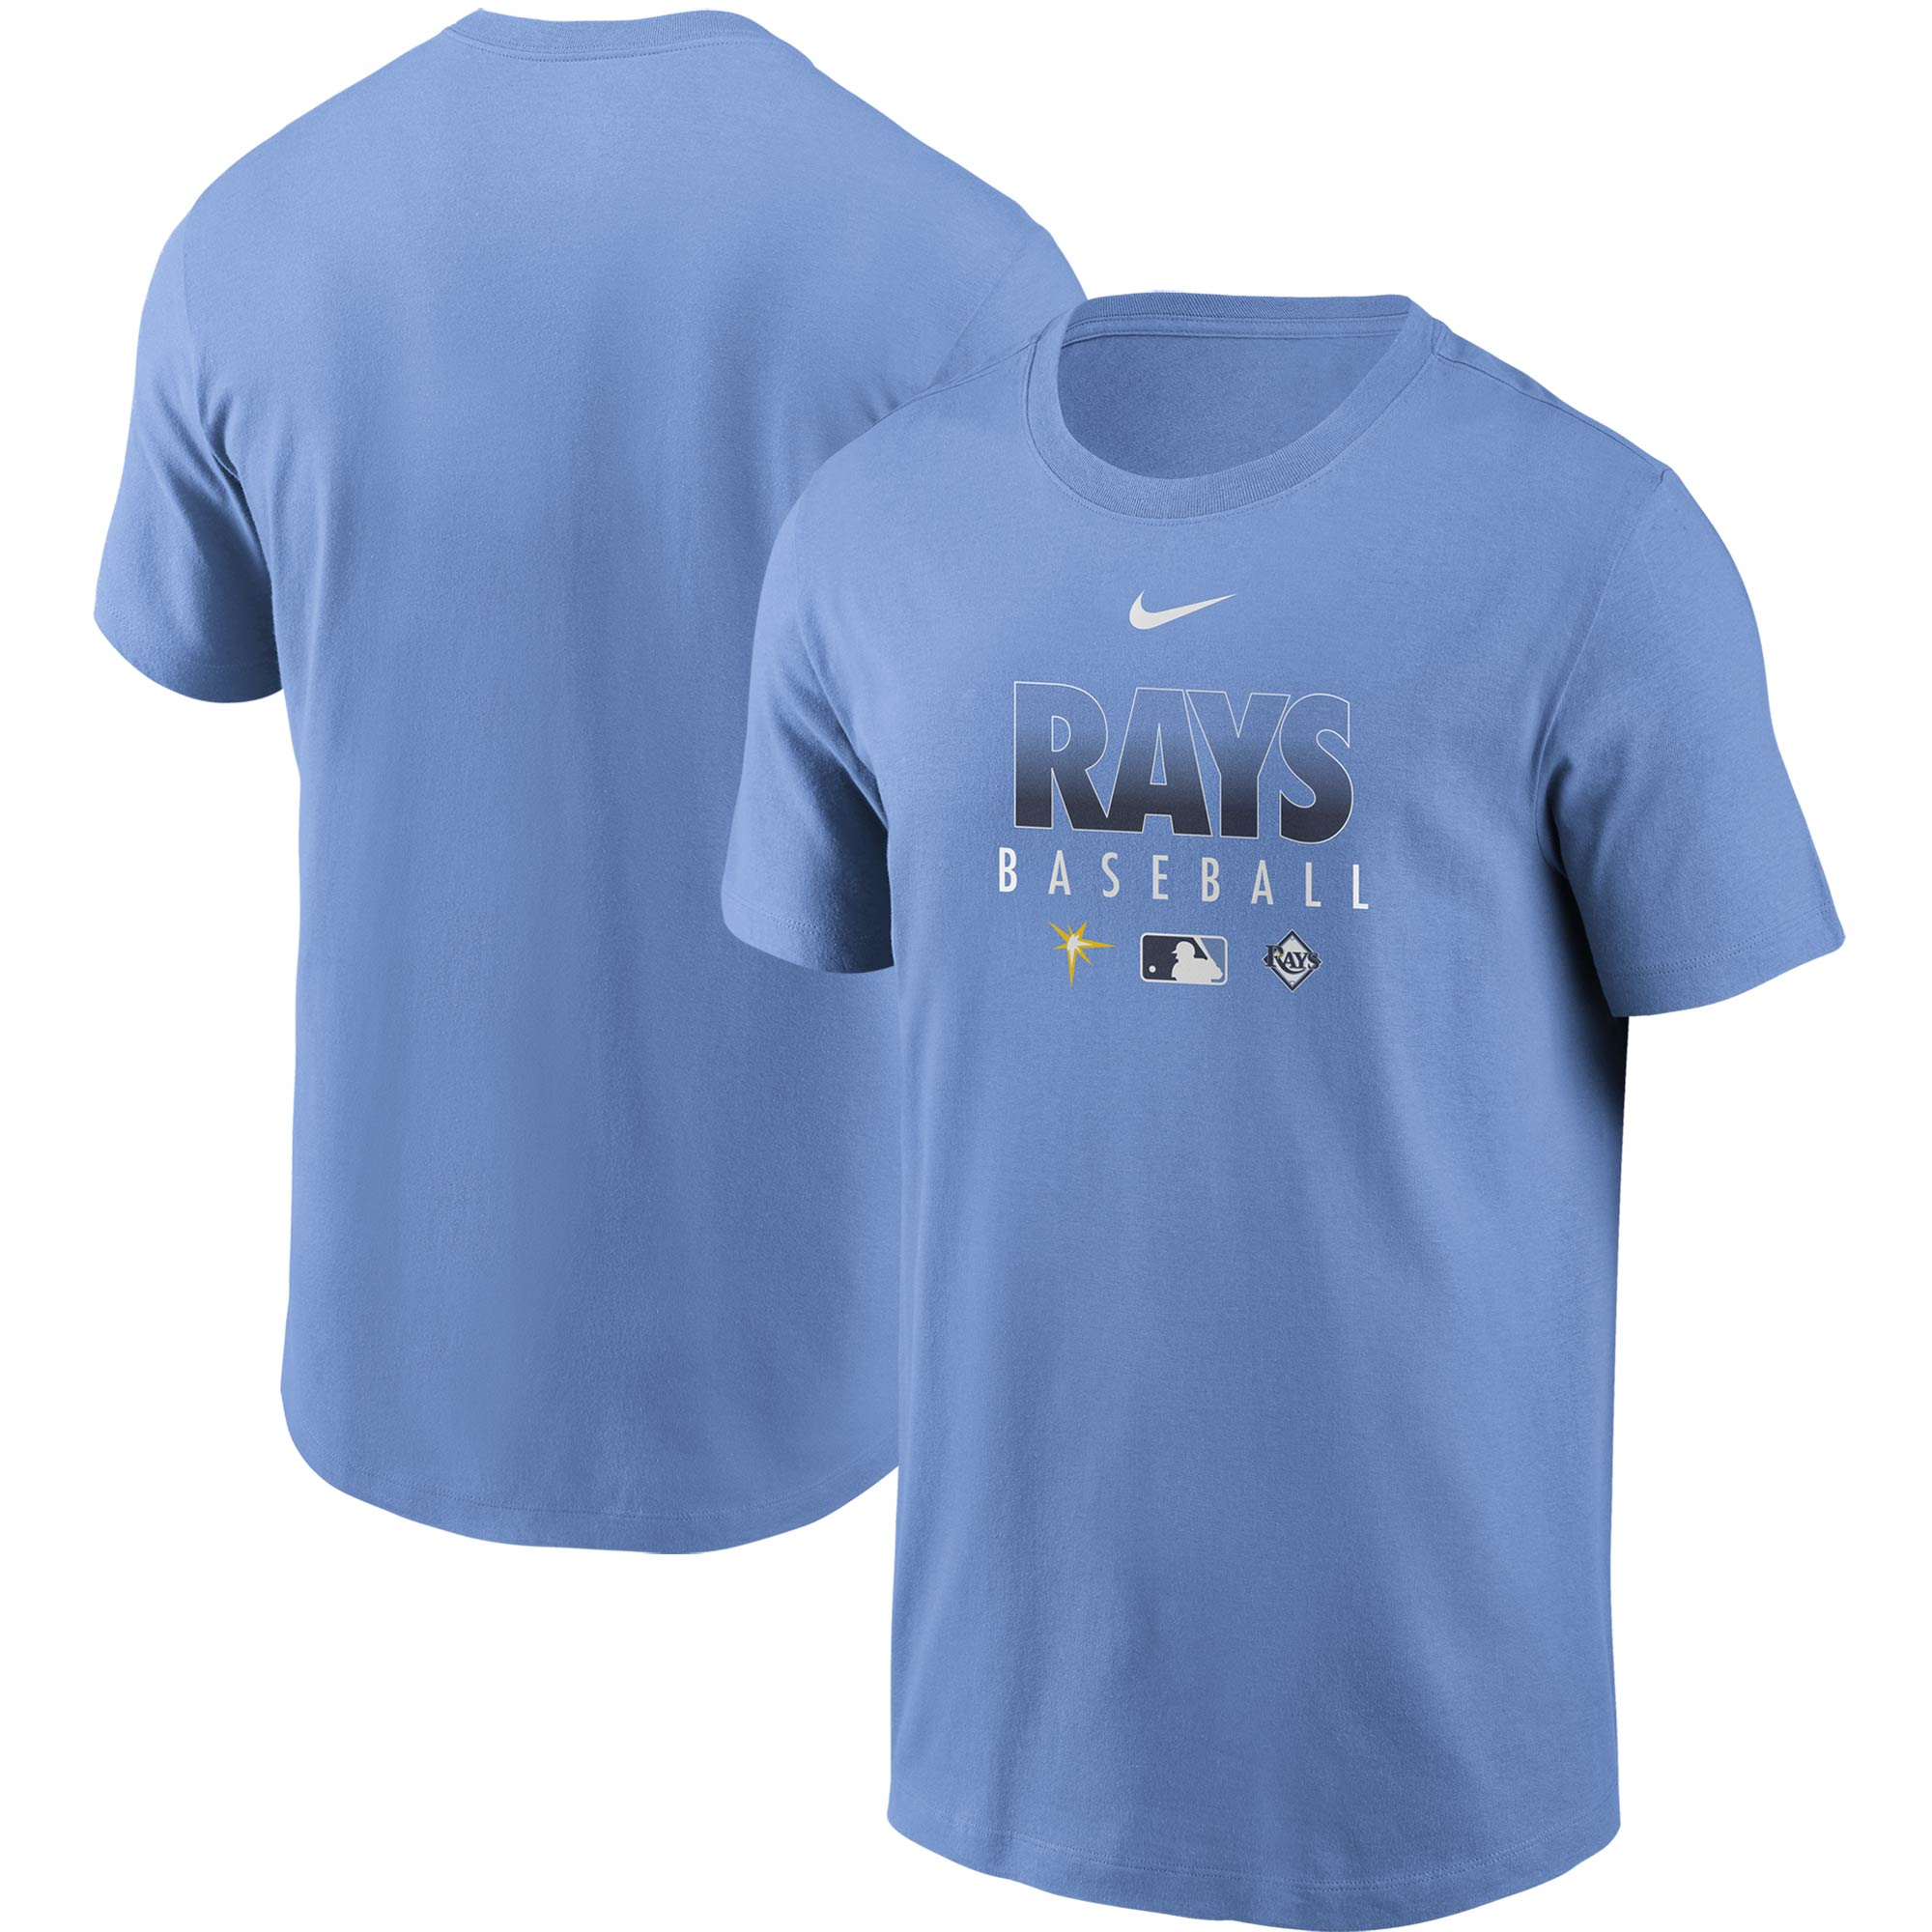 Tampa Bay Rays Nike Authentic Collection Team Performance T-Shirt - Light Blue